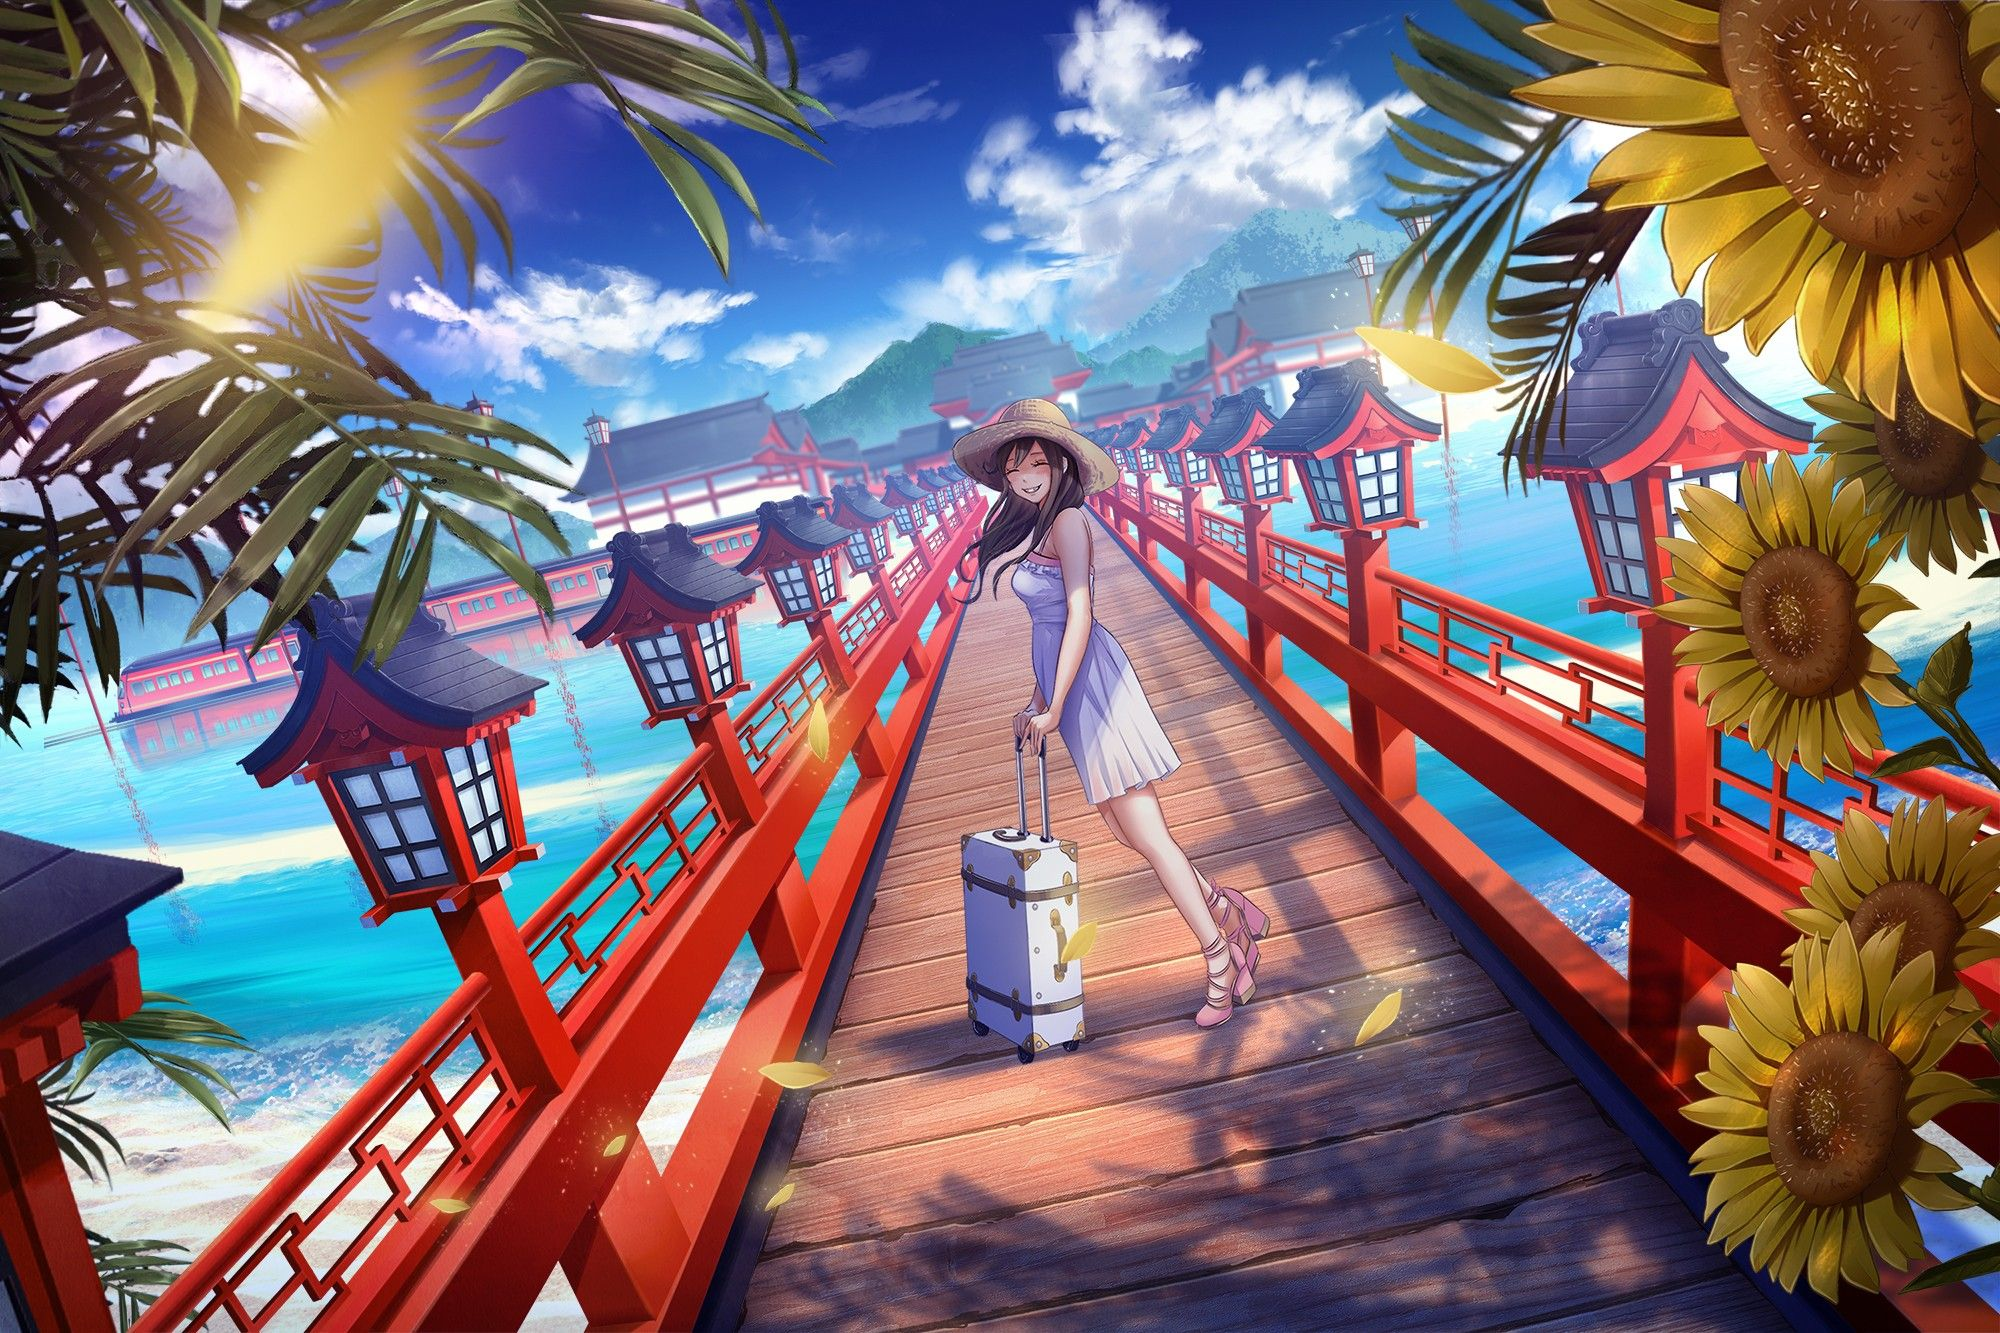 Anime Wallpaper 2000x1333 Anime Girls Beach Clouds Dress Flowers Hat Long Hair Sky Sunflowers Water Univers Manga Dessins De Fille Dessin